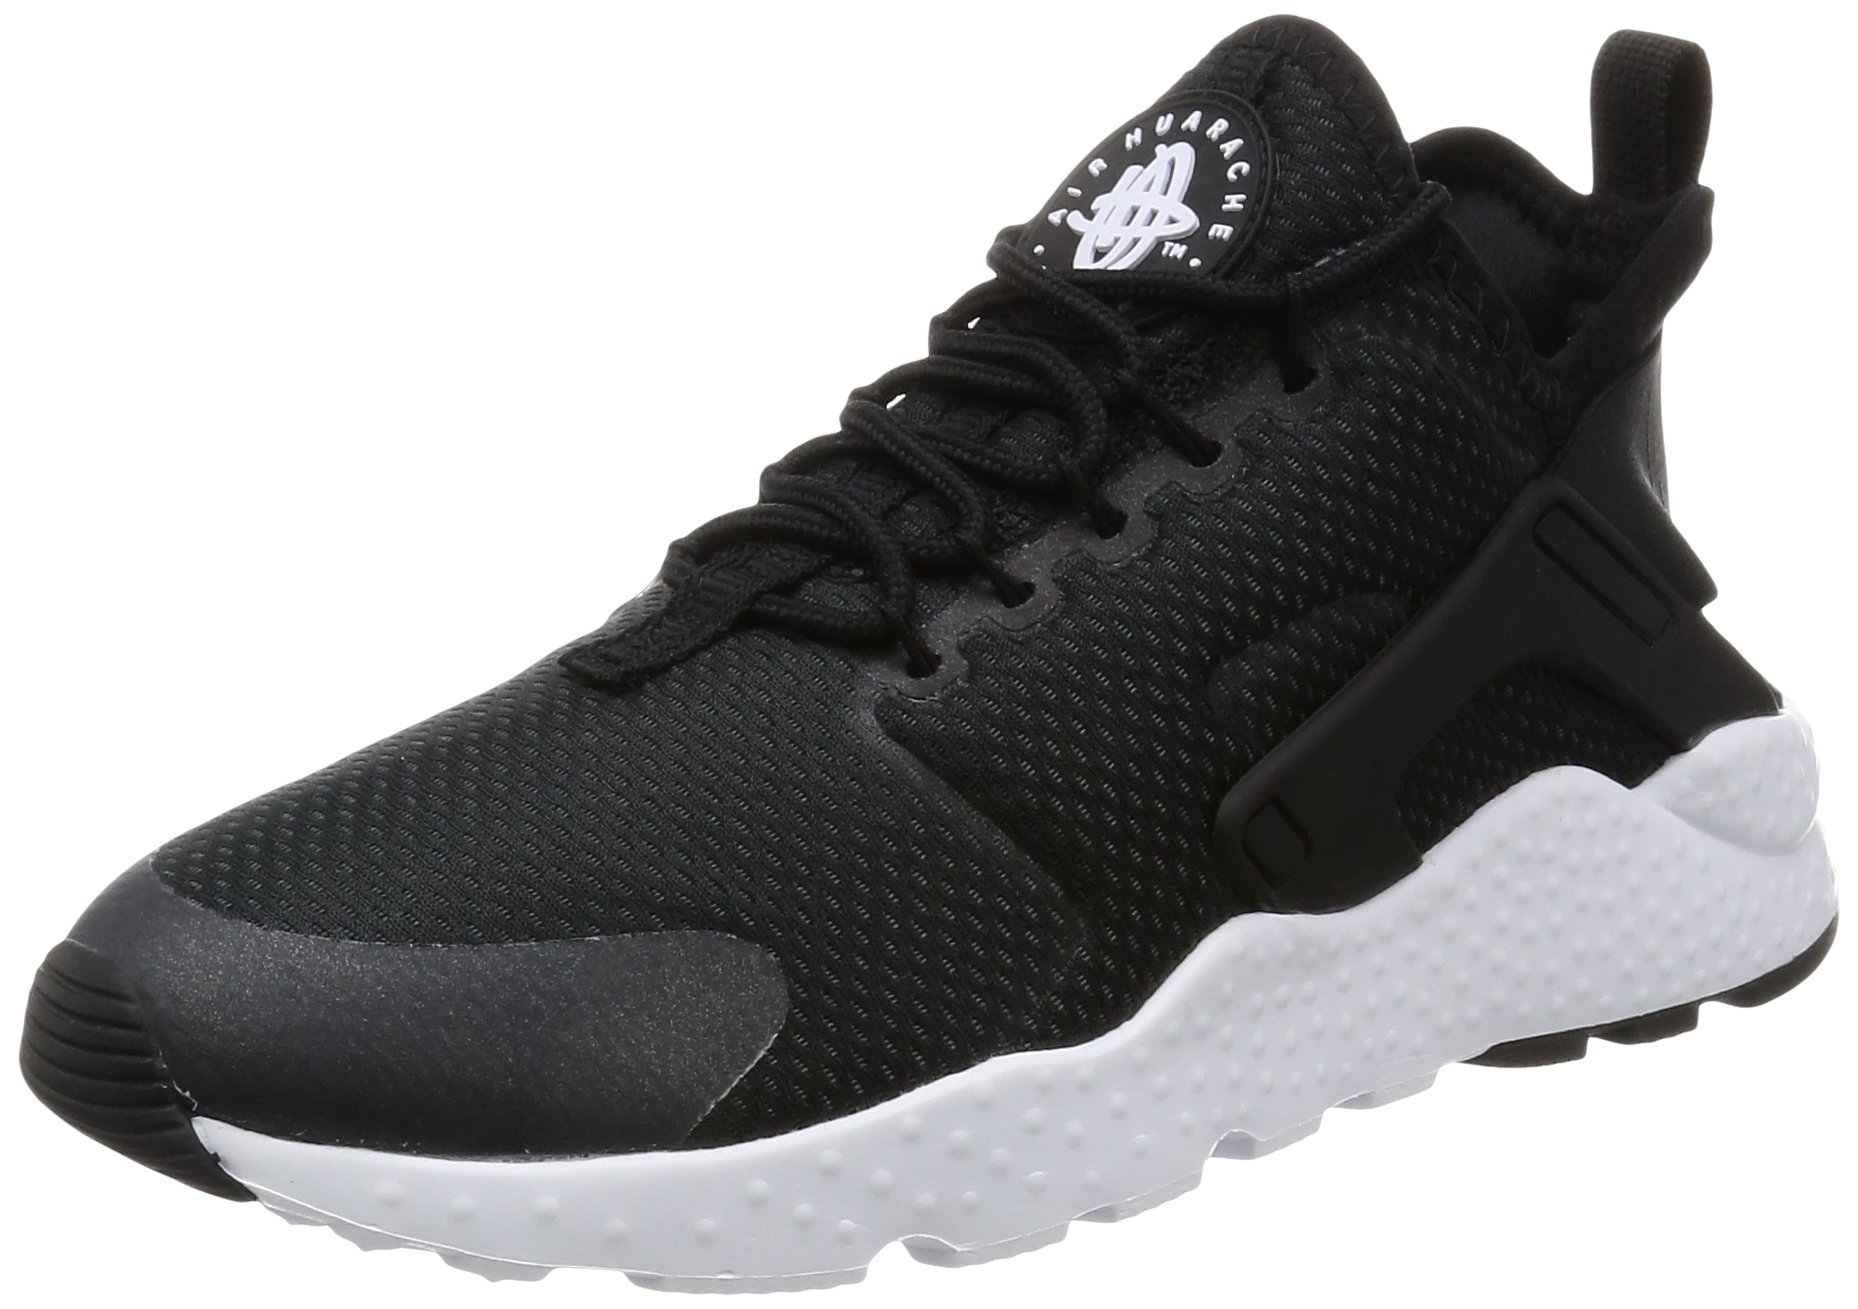 b6f7c55d5a883 Galleon - Nike Women s Air Huarache Run Ultra Black Black-White